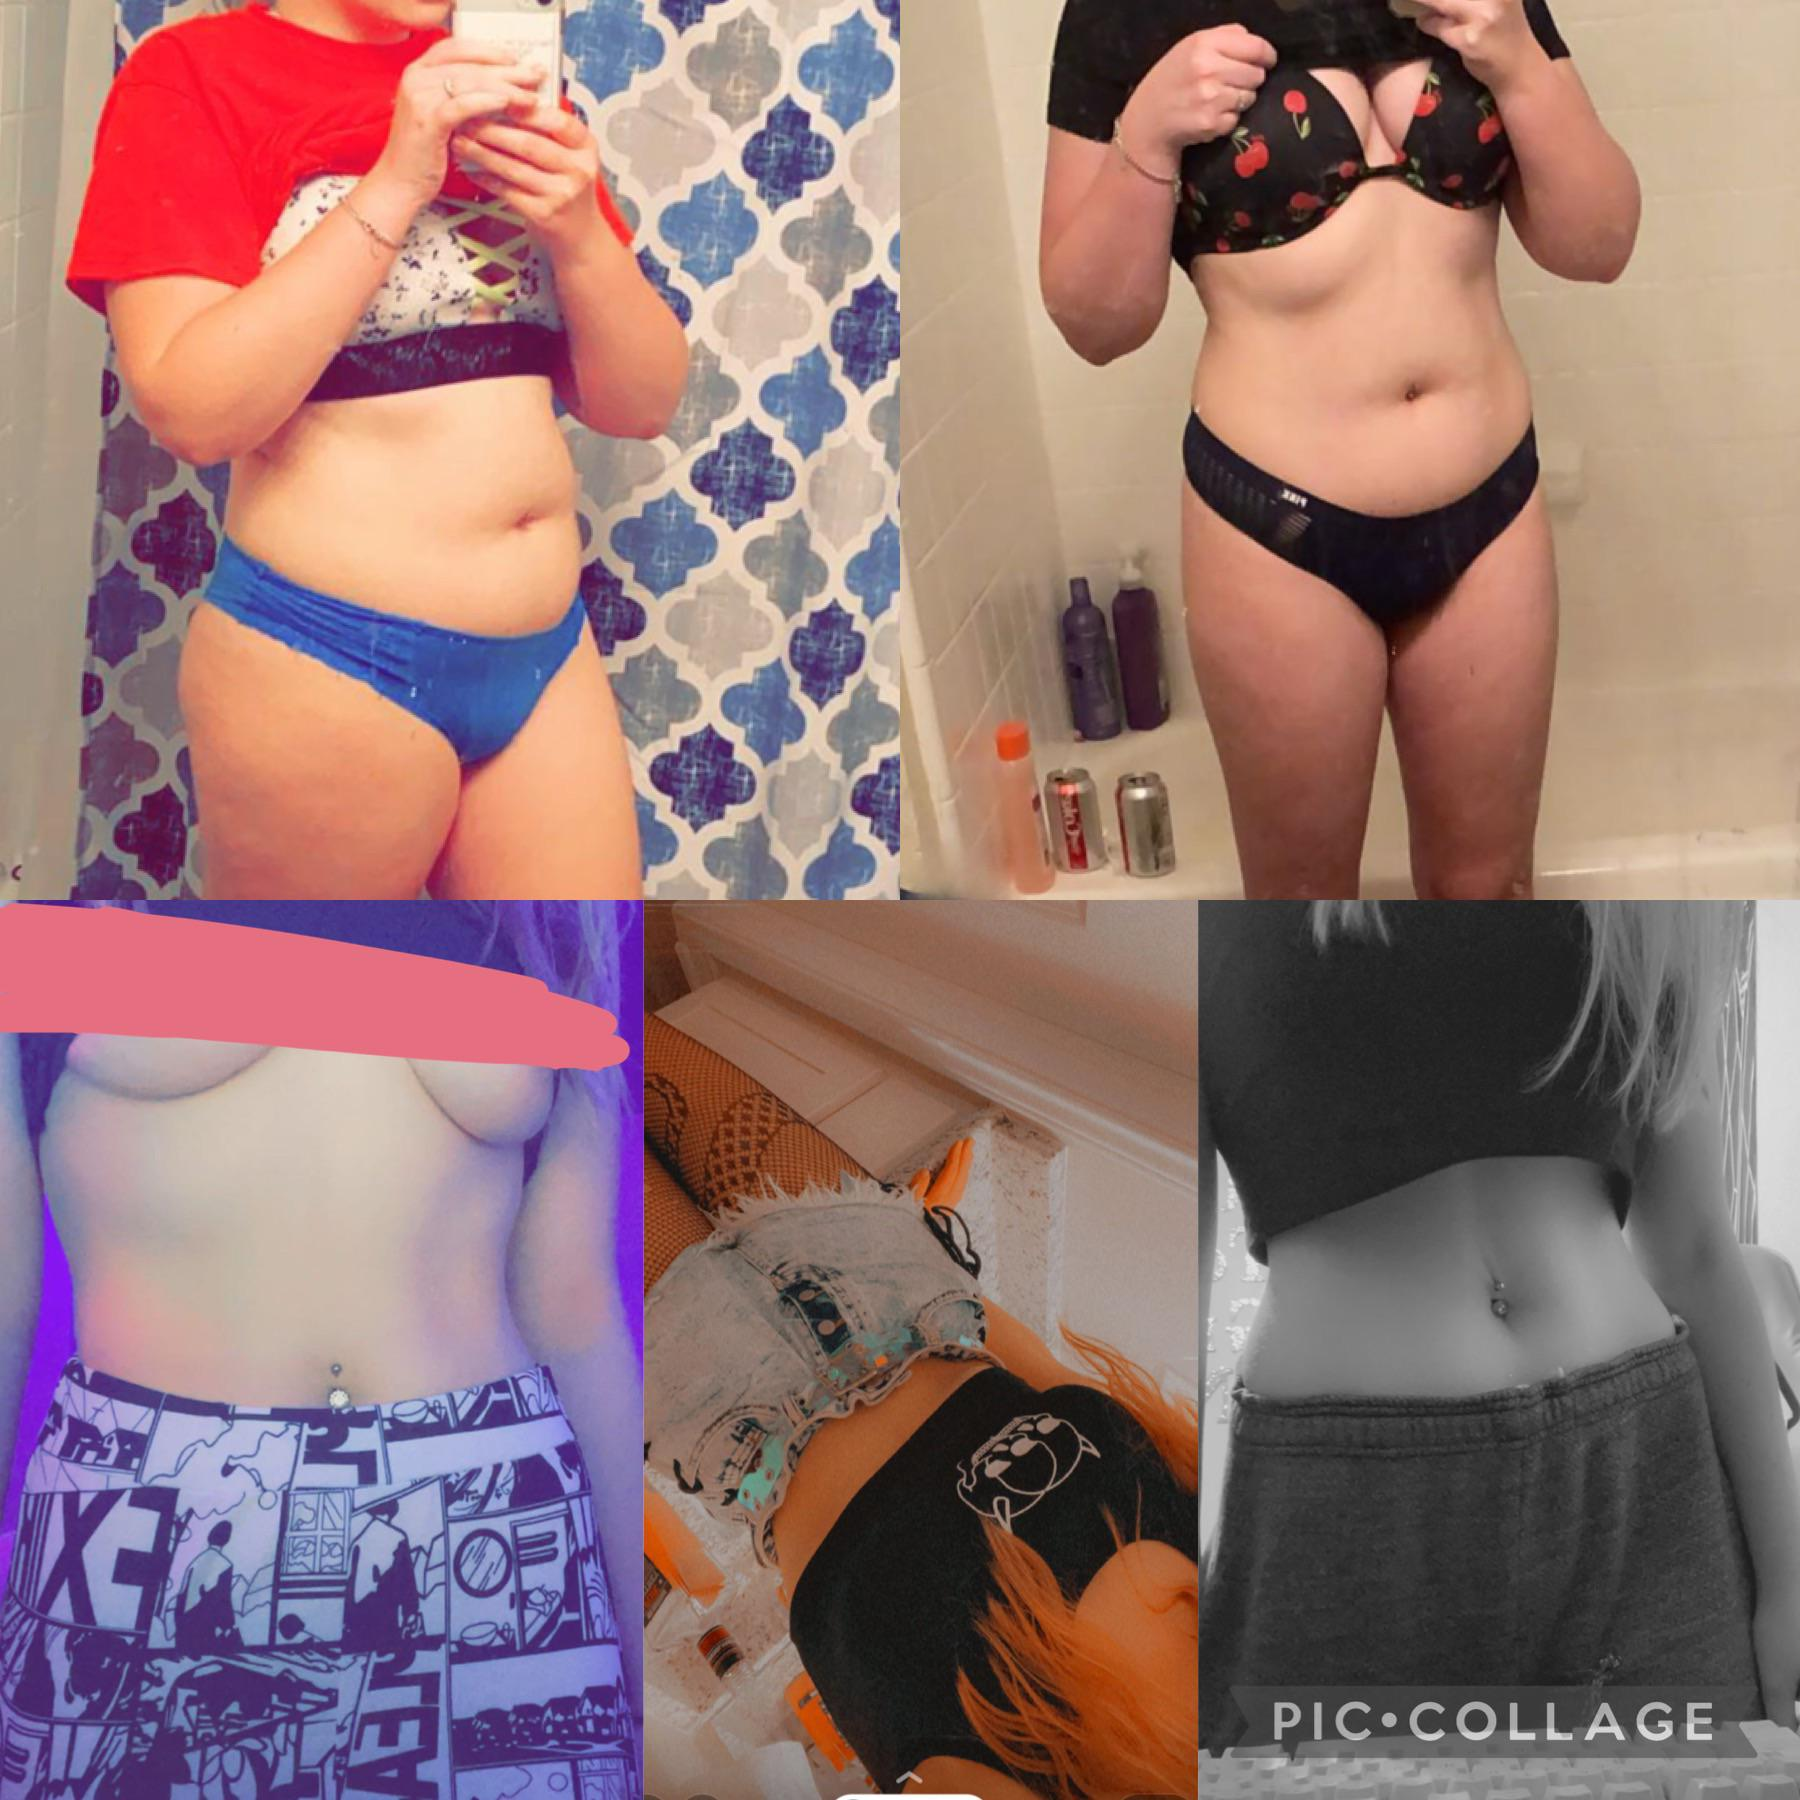 5 feet 6 Female Before and After 45 lbs Fat Loss 171 lbs to 126 lbs